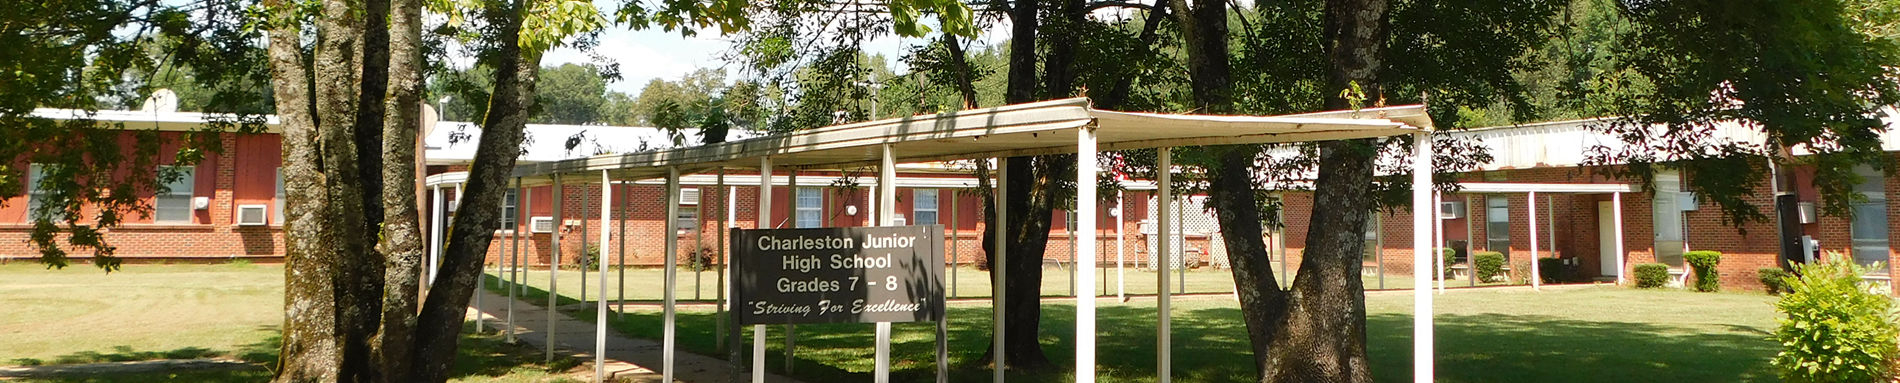 Charleston Middle School